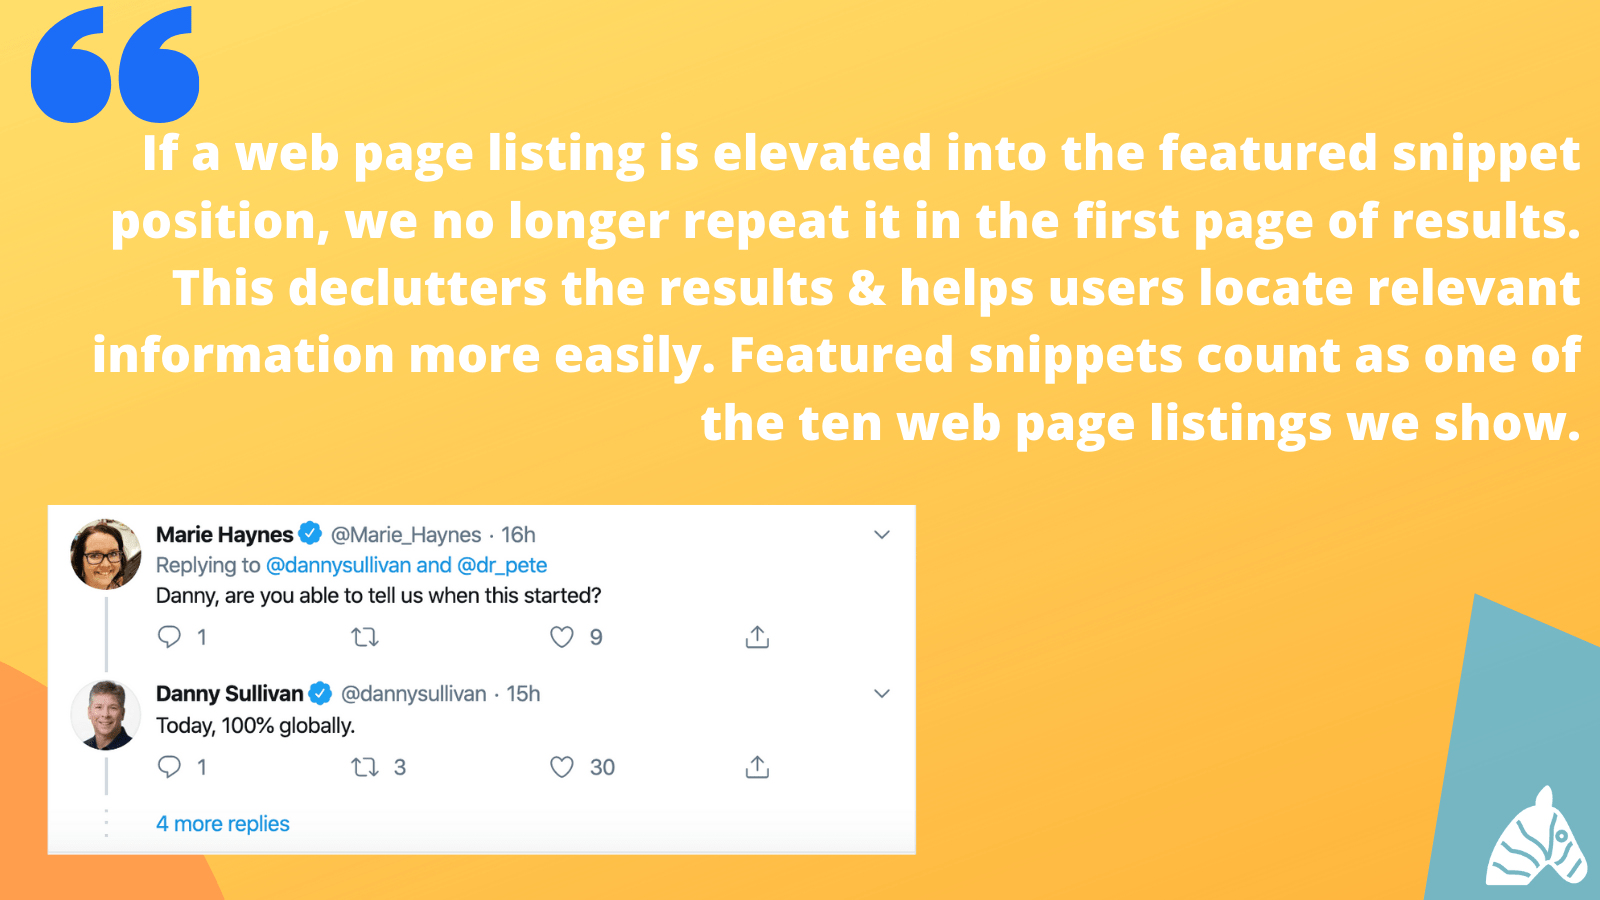 featured snippet update tweets - 1